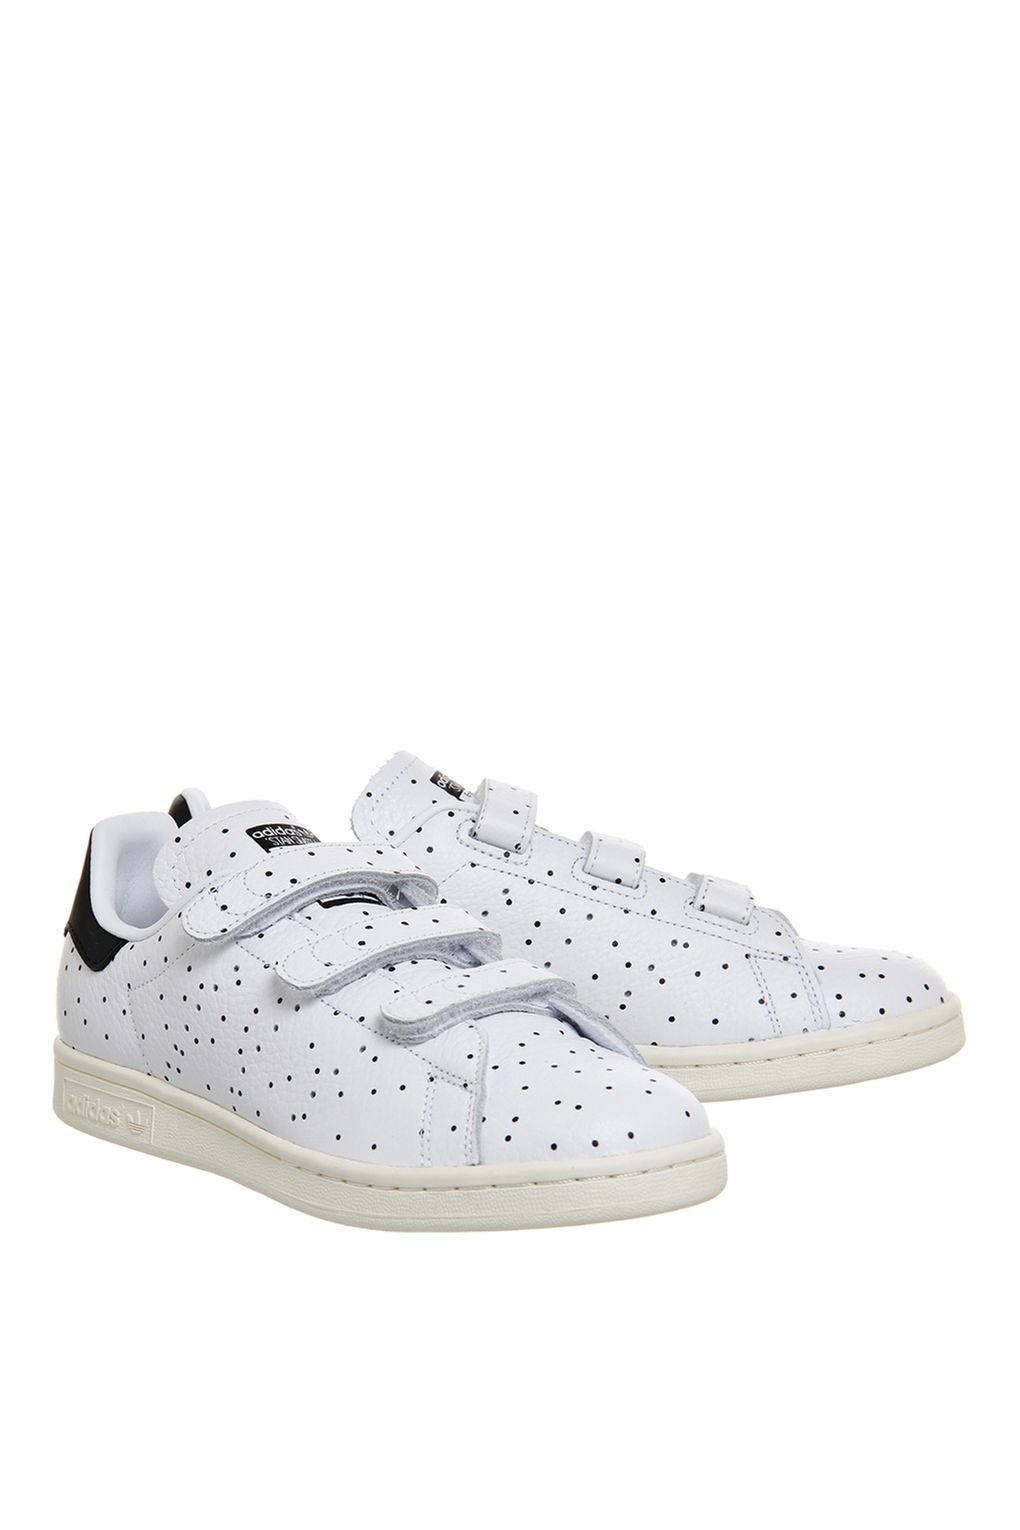 best service 4548d 91bdd Stan Smith CF Trainers by adidas supplied by Office | Run ...